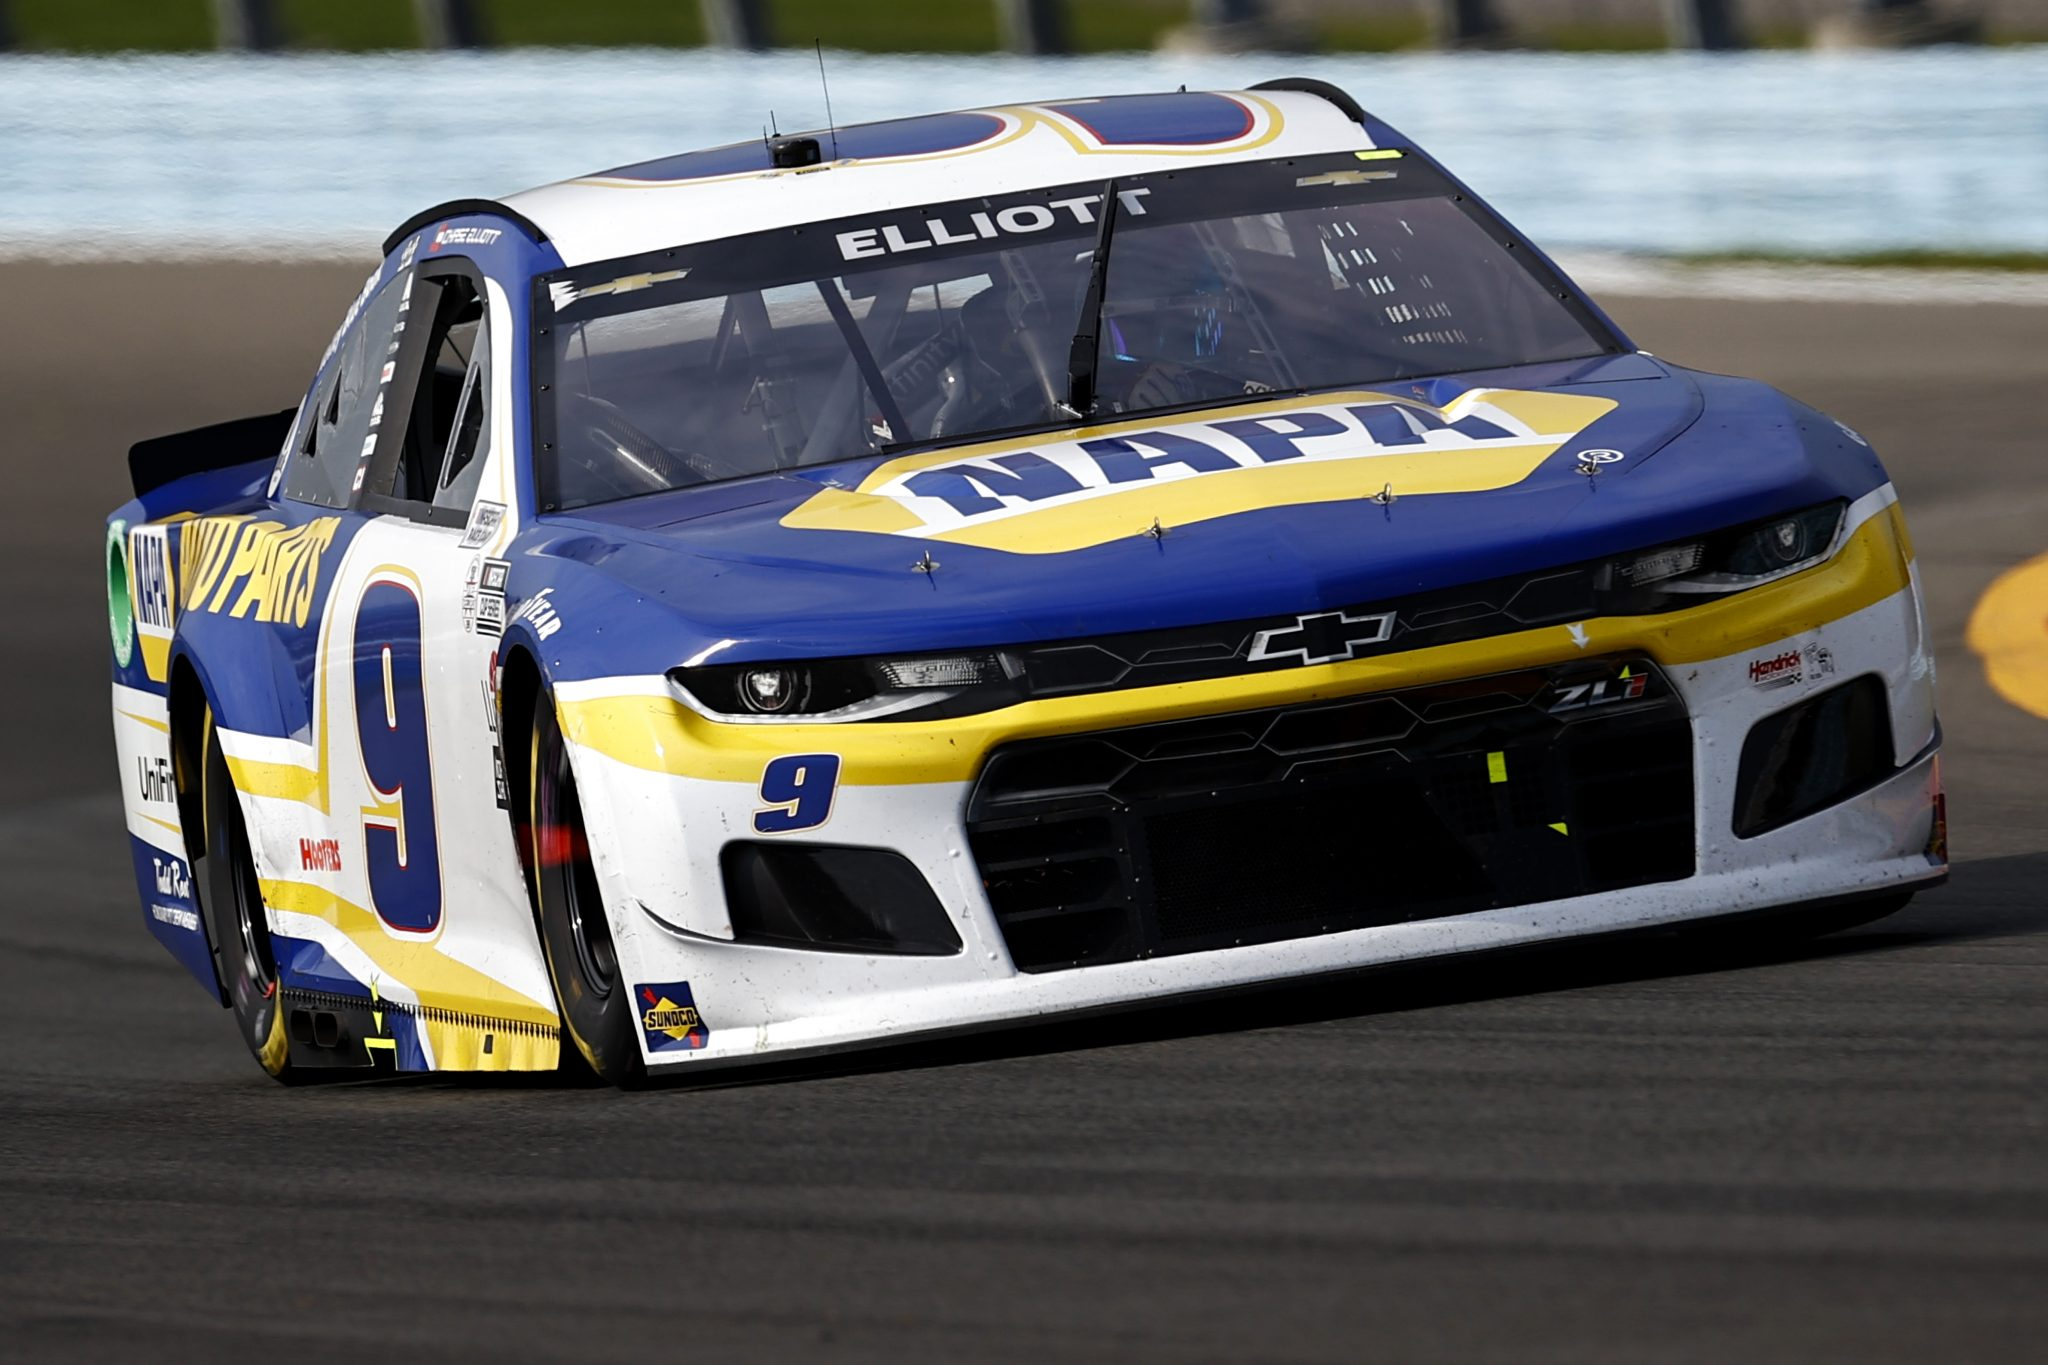 WATKINS GLEN, NEW YORK - AUGUST 08: Chase Elliott, driver of the #9 NAPA Auto Parts Chevrolet, drives during the NASCAR Cup Series Go Bowling at The Glen at Watkins Glen International on August 08, 2021 in Watkins Glen, New York. (Photo by Jared C. Tilton/Getty Images)   Getty Images